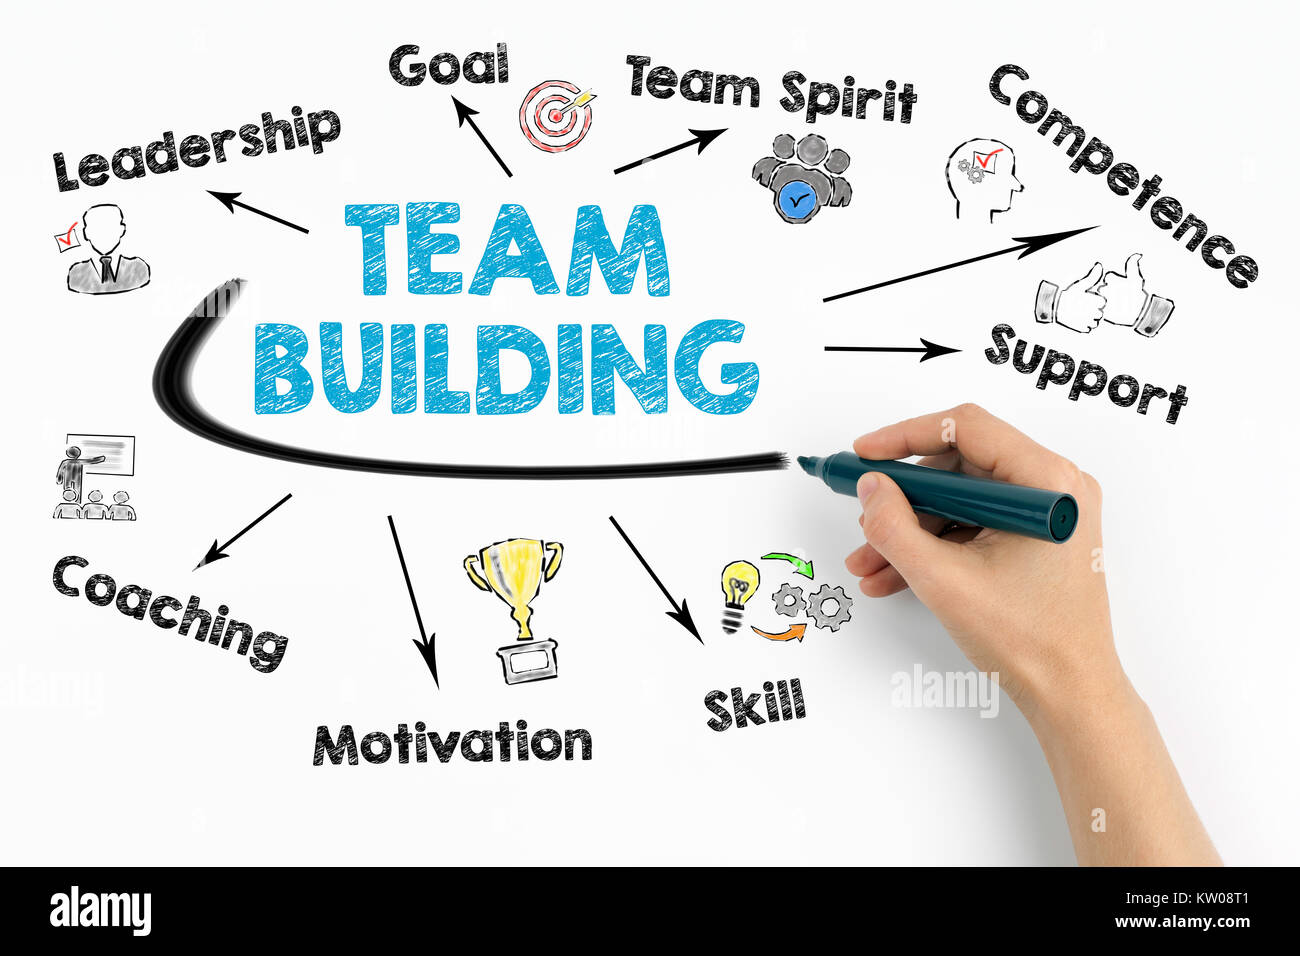 team building Concept. Chart with keywords and icons on white background - Stock Image